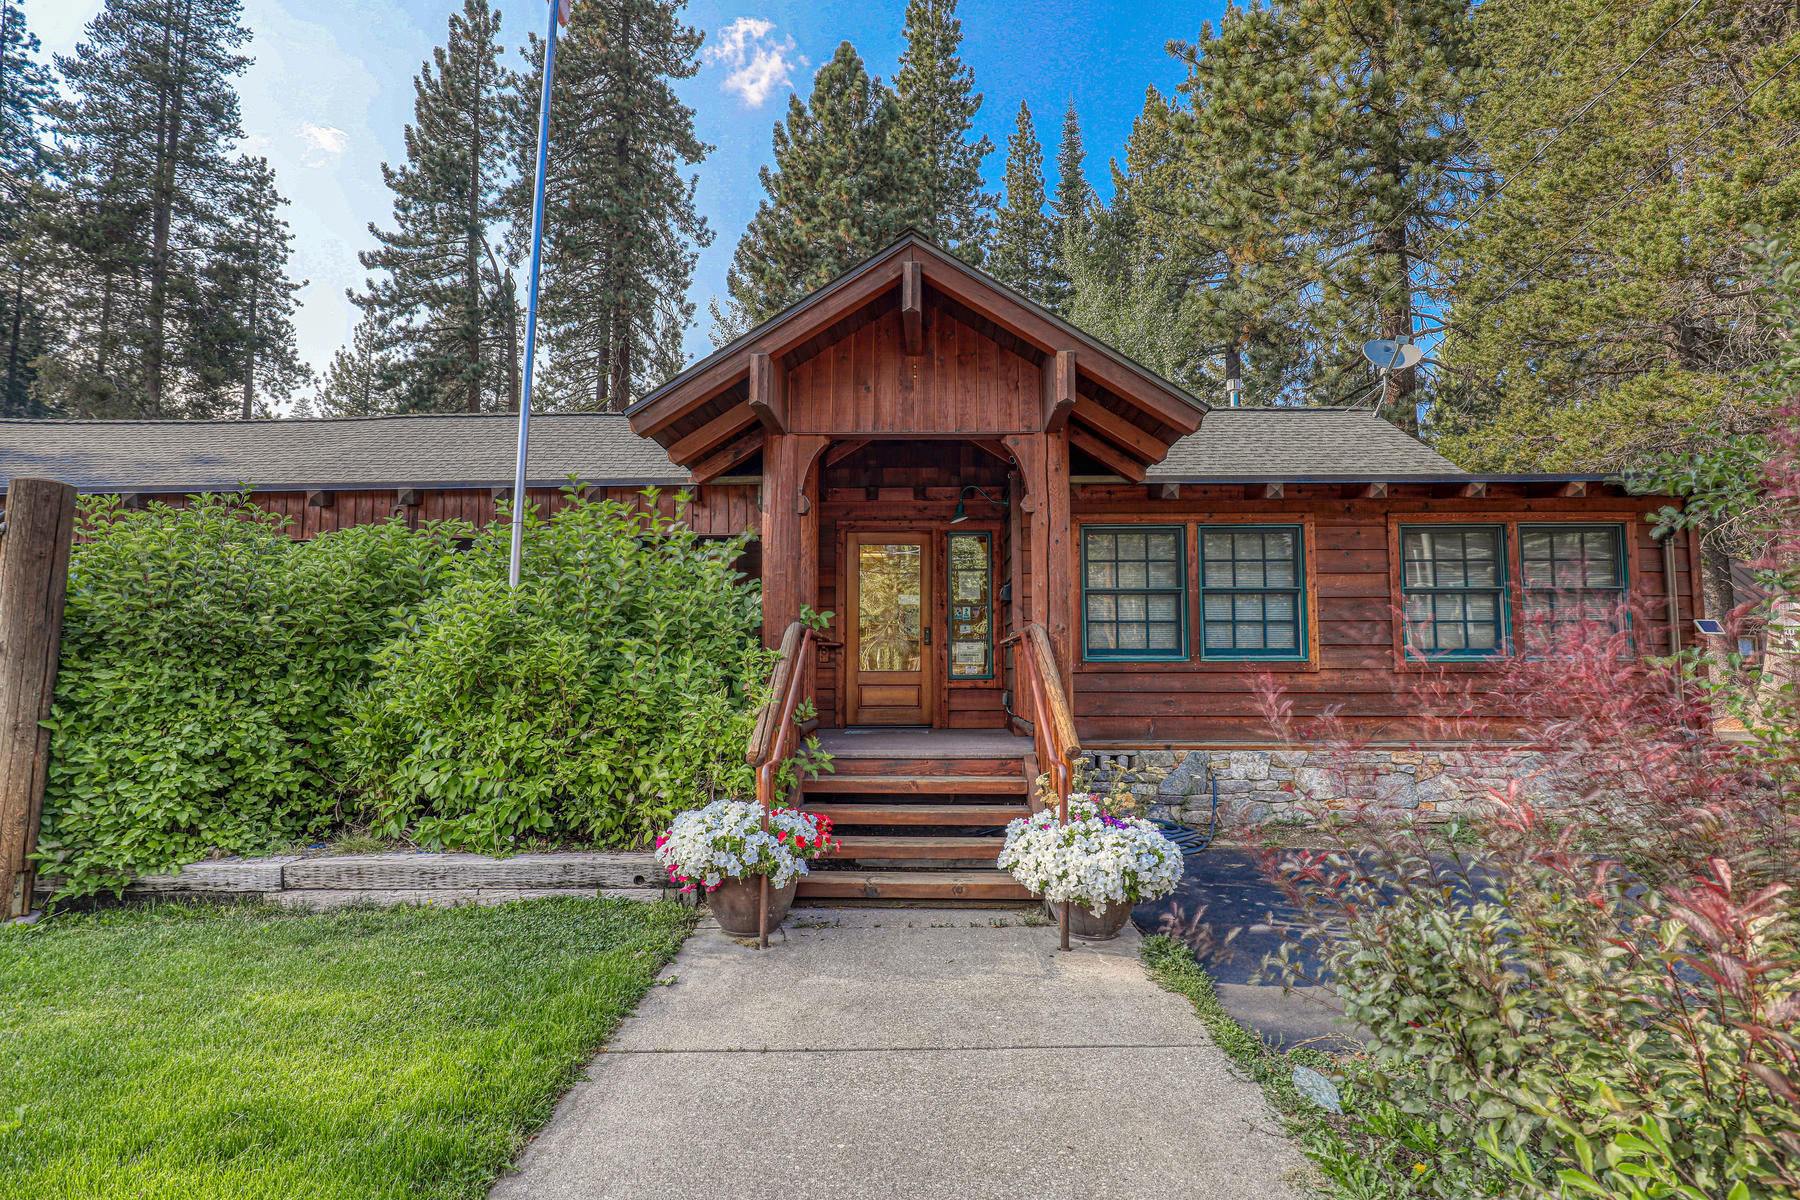 Single Family Homes for Active at Donner Lake Live/Work Opportunity 15826 Donner Pass Rd. Truckee, California 96161 United States